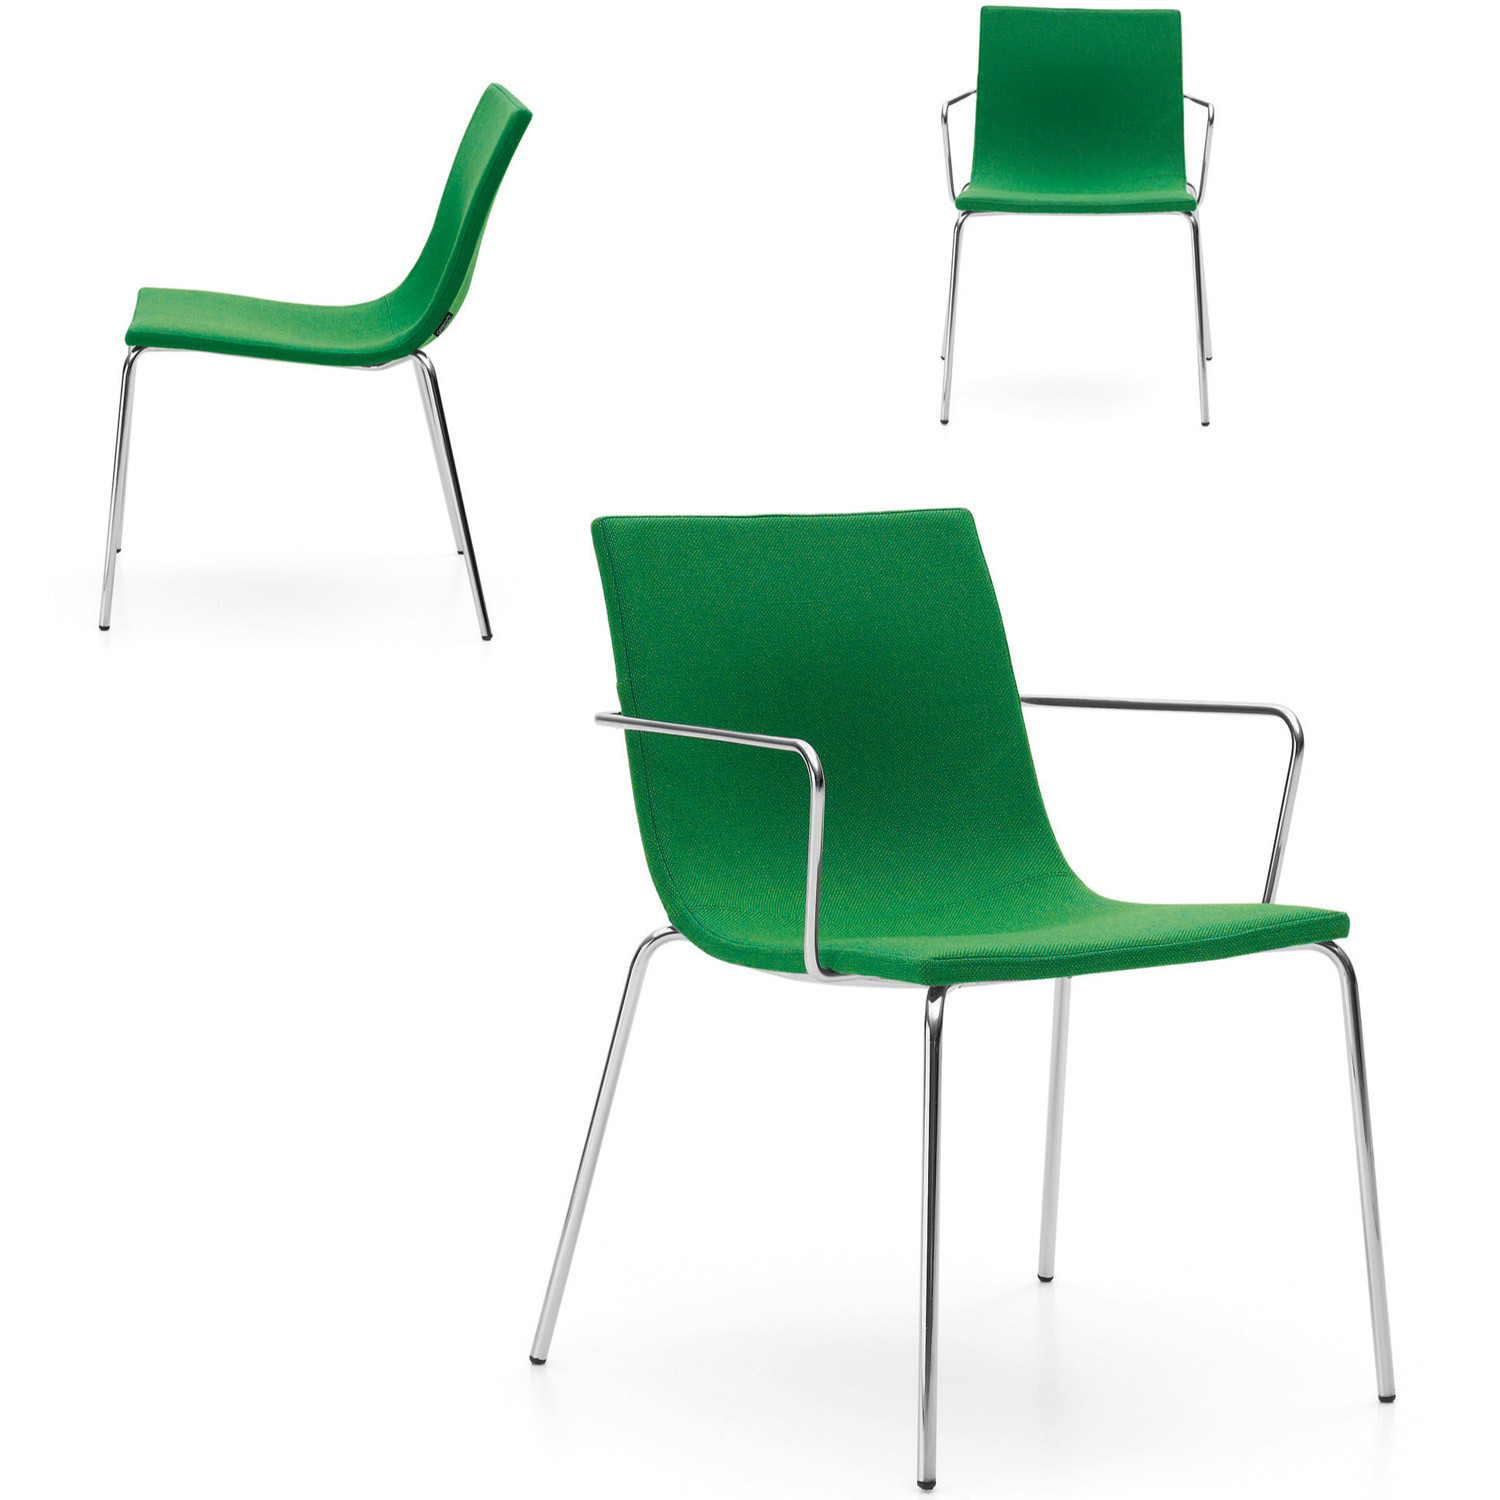 Bond Light Chair Range